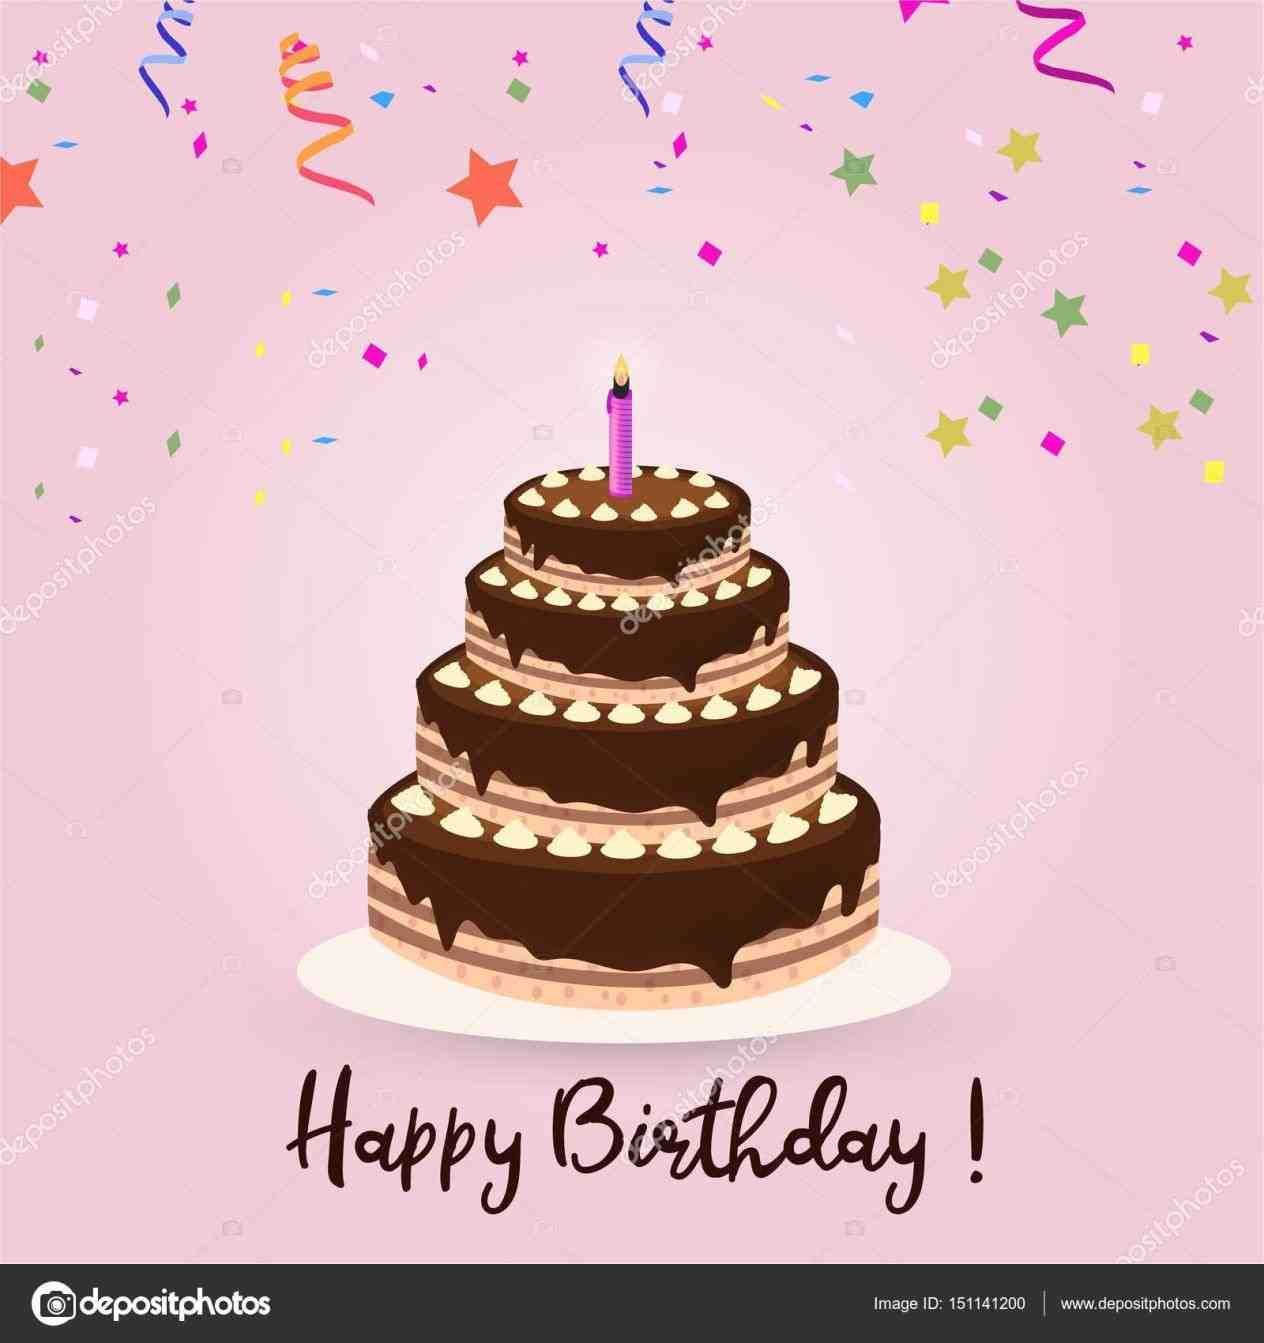 Easy homemade birthday cards to get ideas how to make your own to get ideas how to make your own birthday card design 1 happy birthday flower hd wallpaper whatsapp happy birthday wishes video song free download mp4 bookmarktalkfo